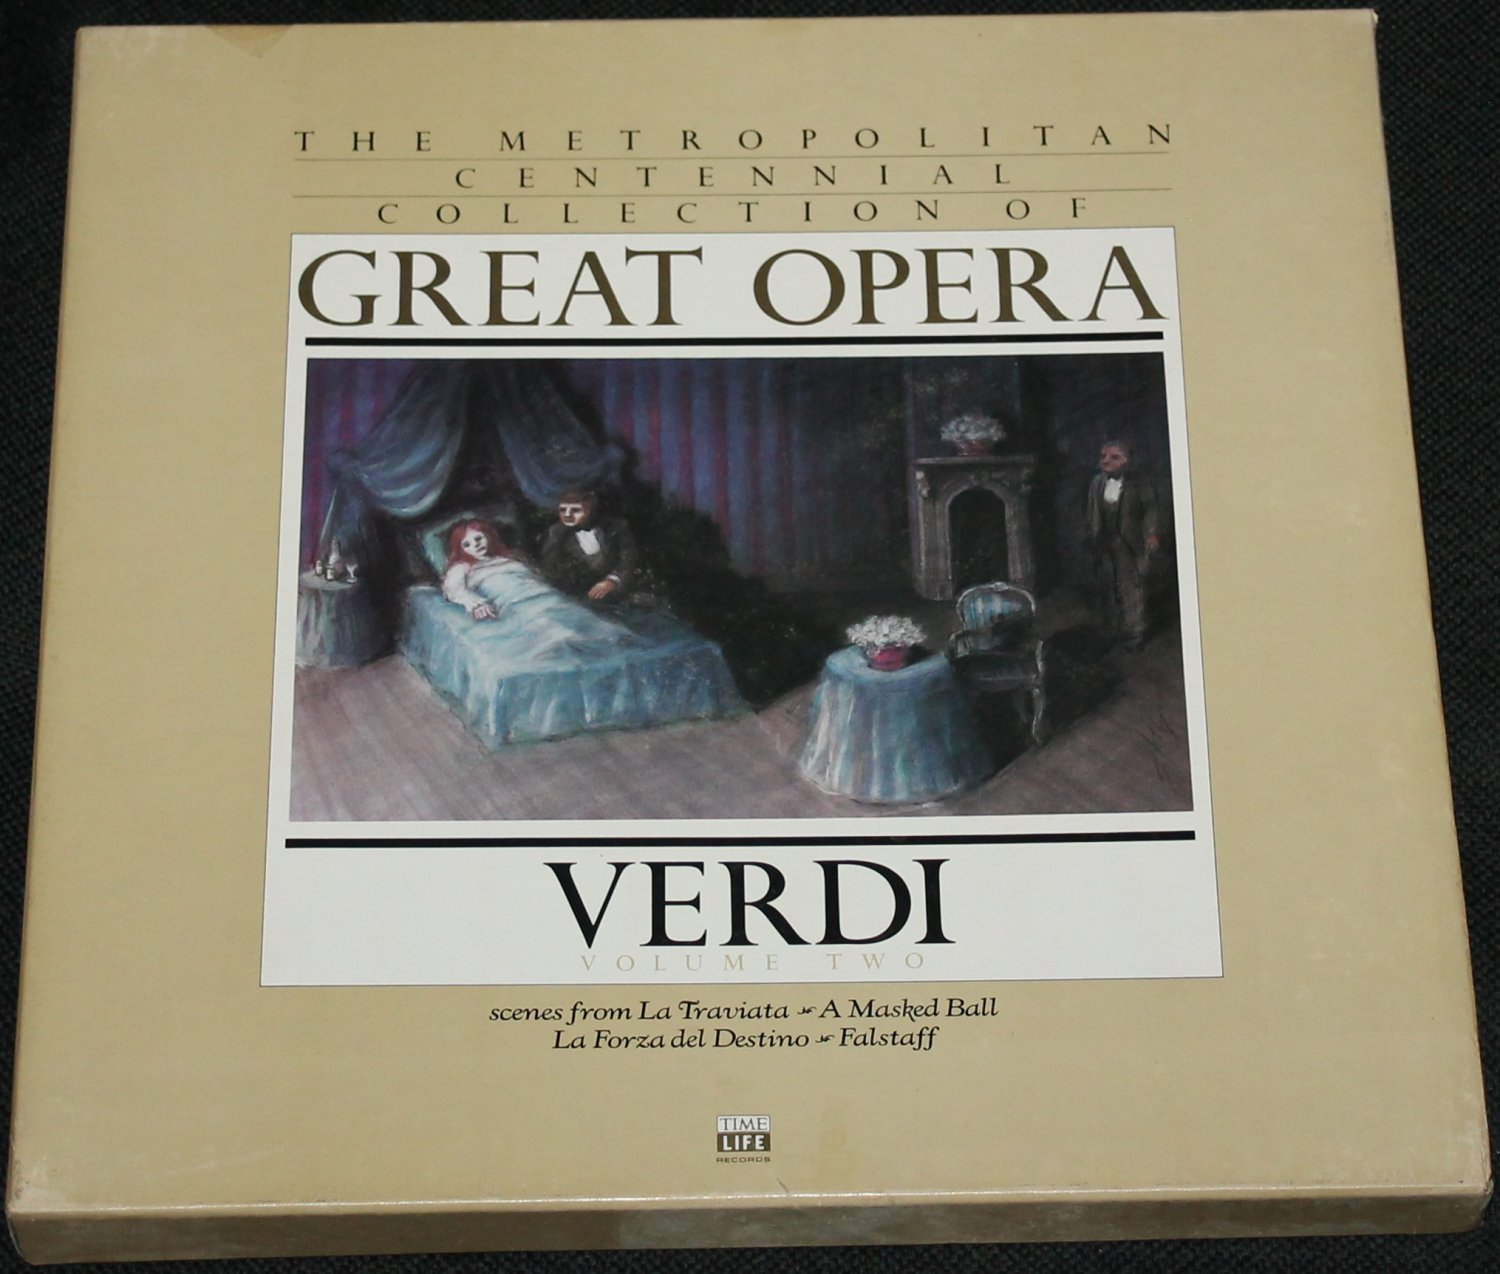 Great Opera Verdi Record Set